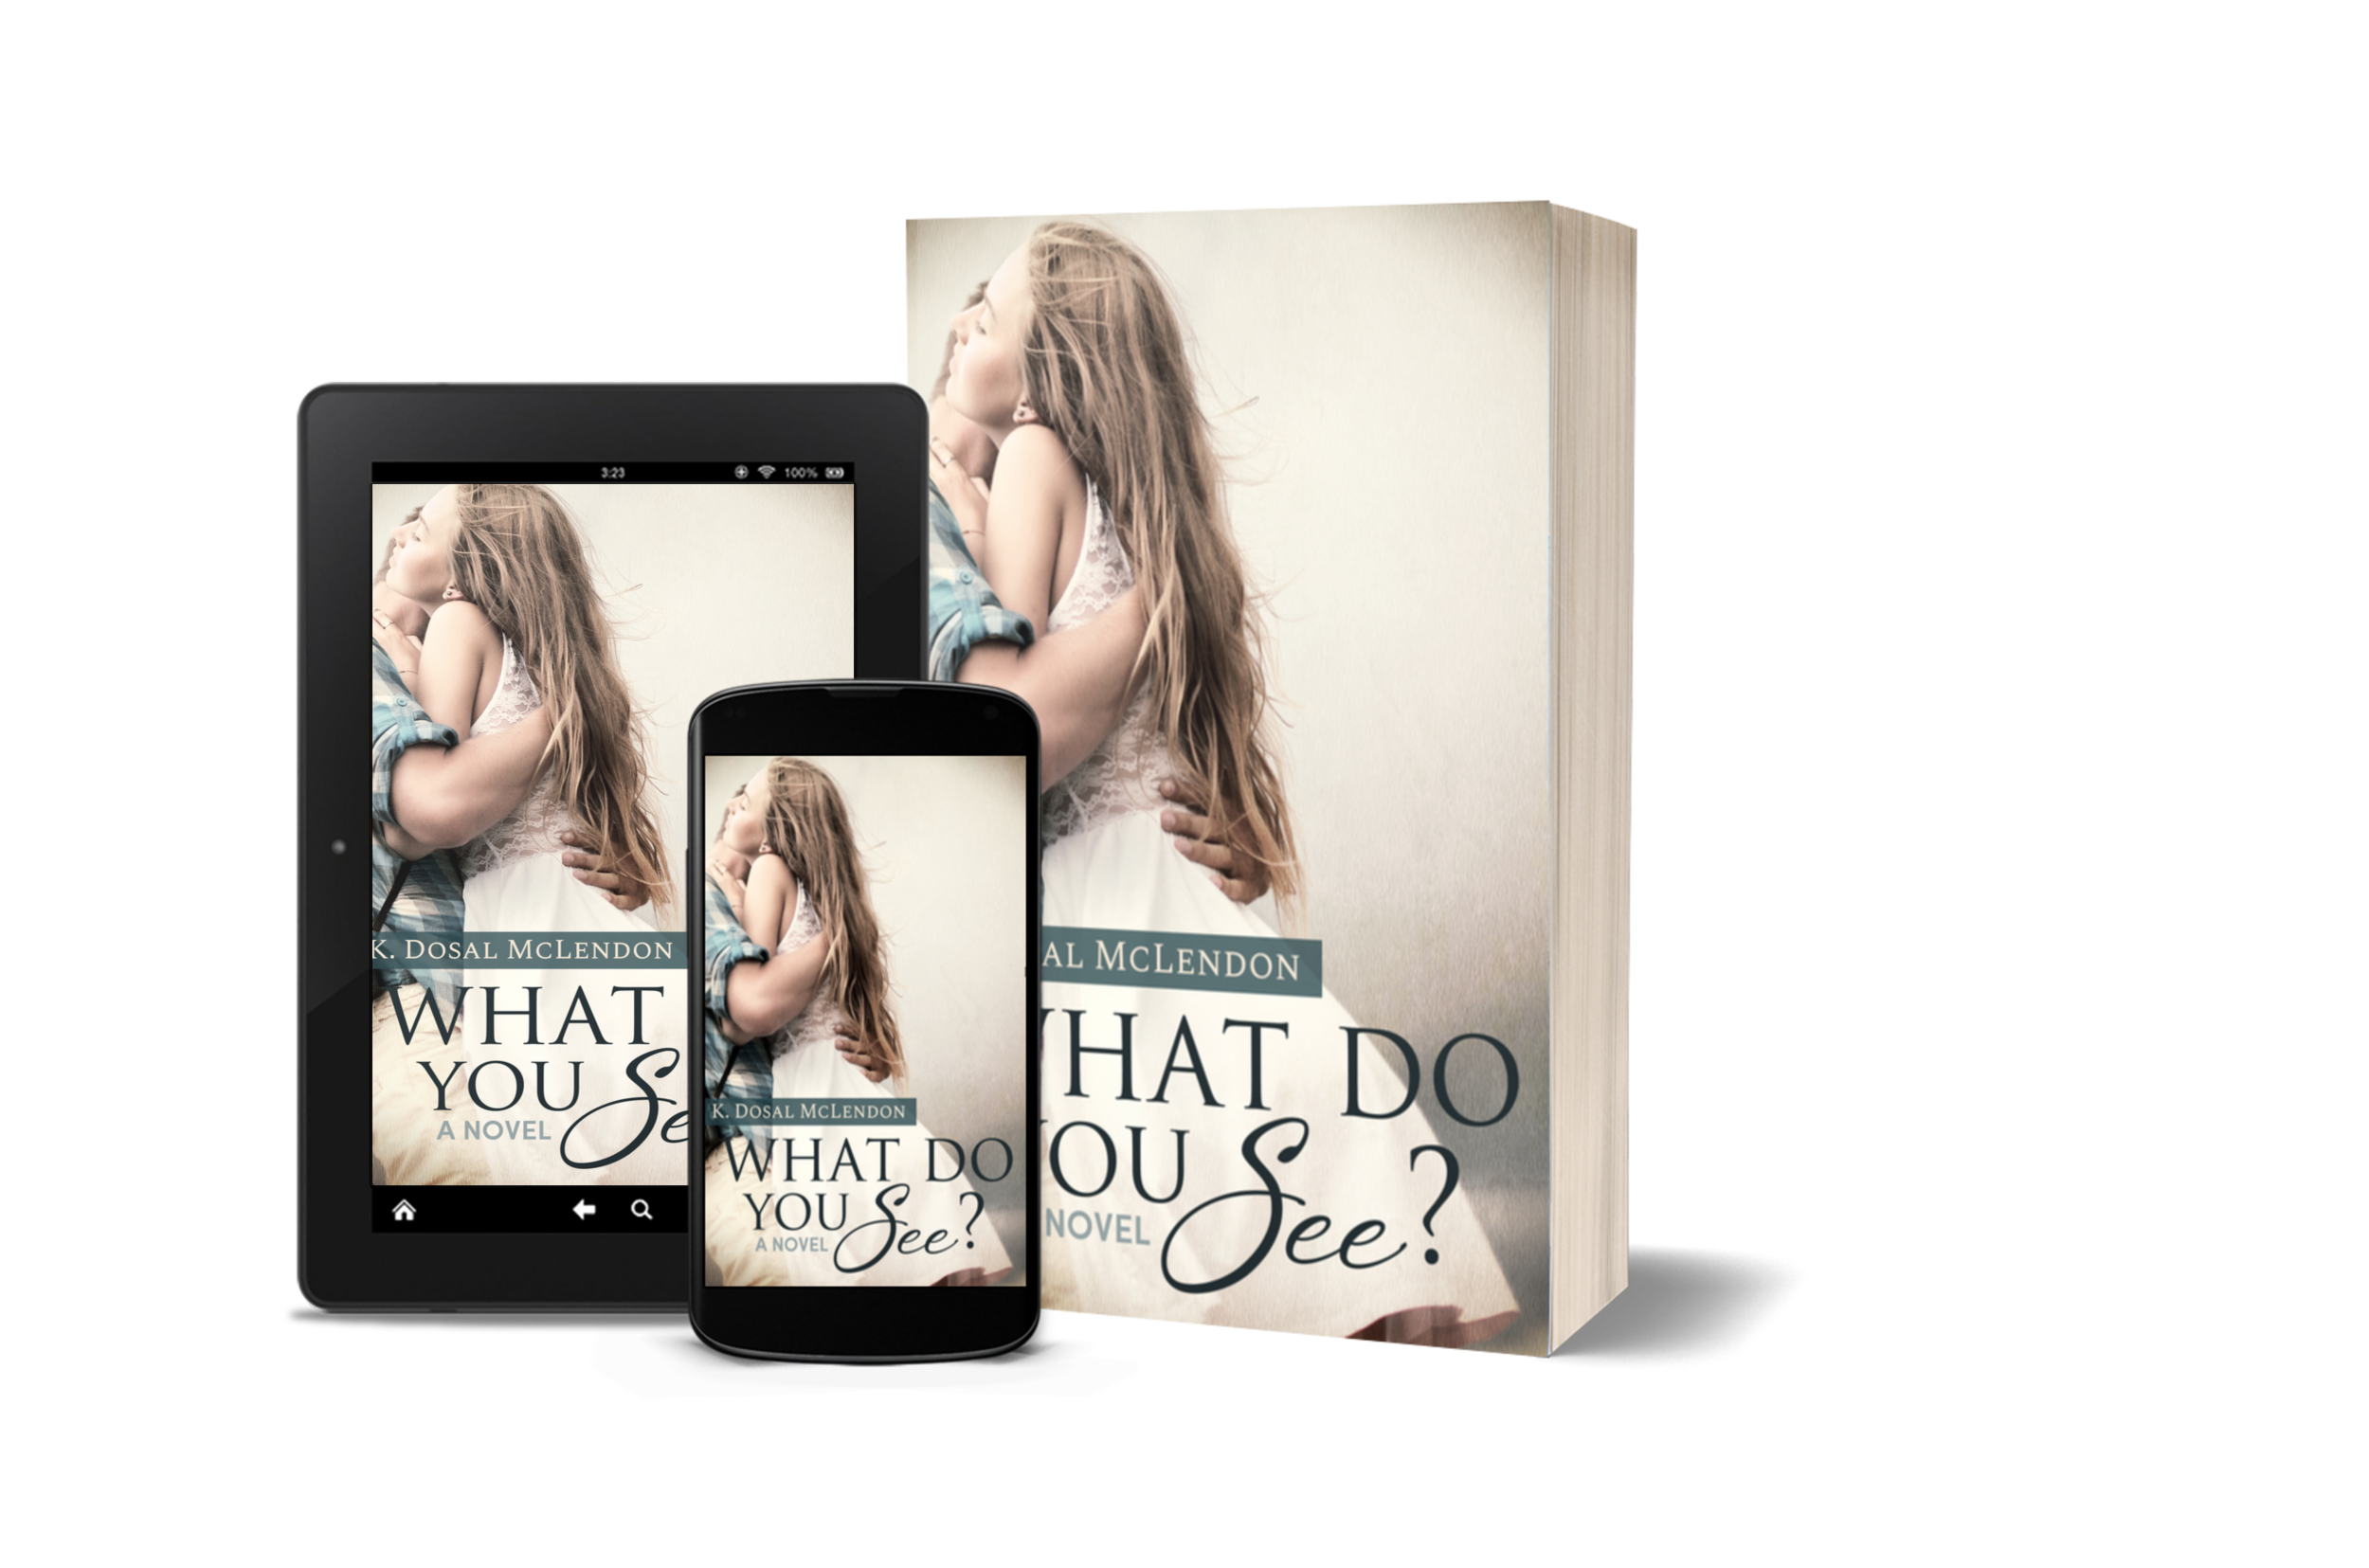 K. Dosal Mclendon - Check out Kassy's new book What Do You See?